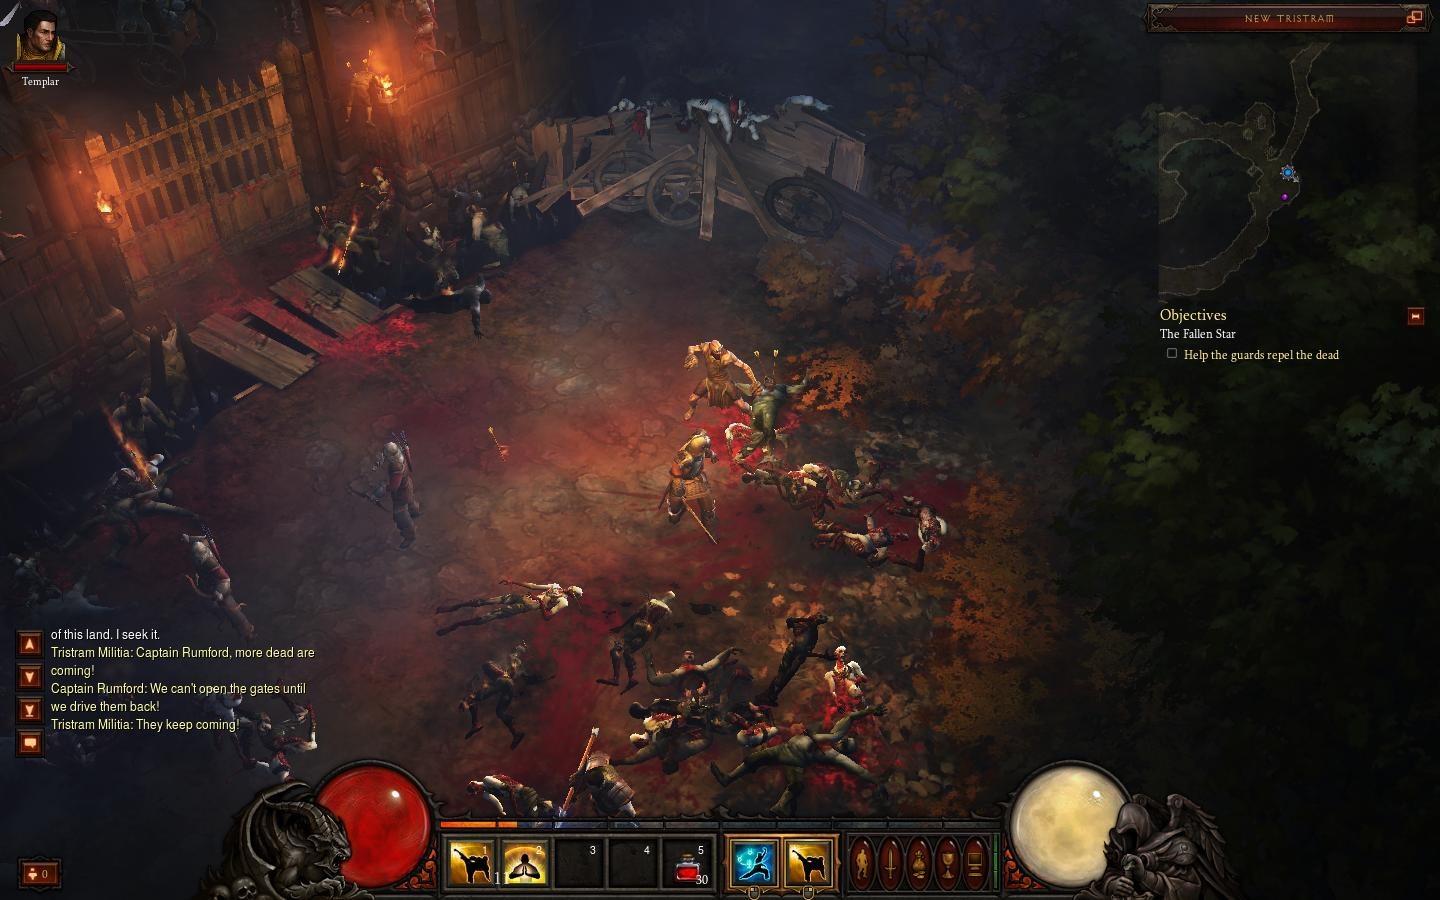 Diablo III's environments are gloomy, foreboding, and gorgeous.